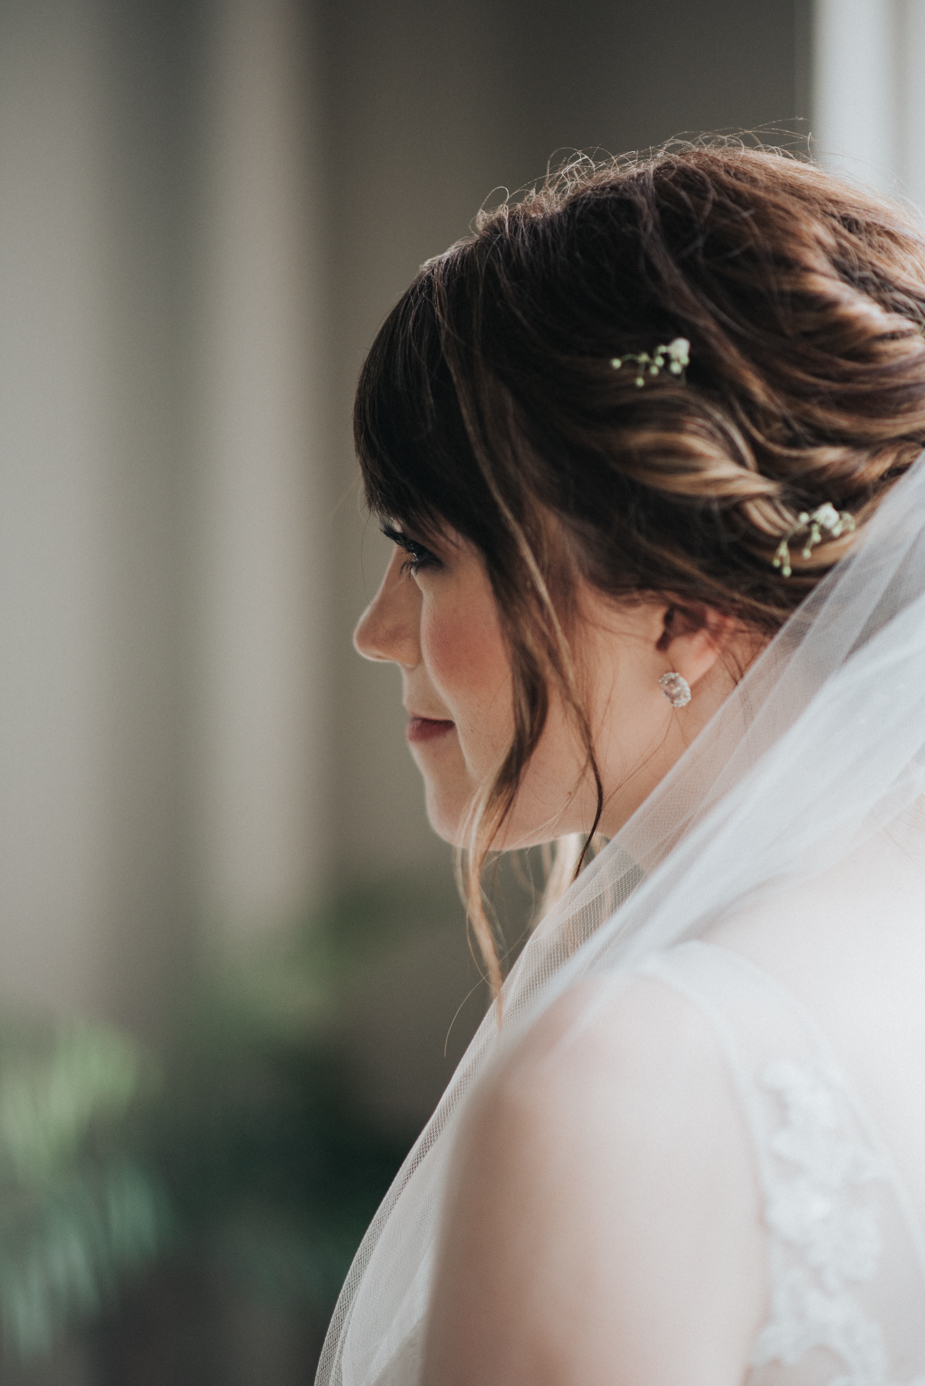 Bridal Portraits, Jessica Leanne Photography